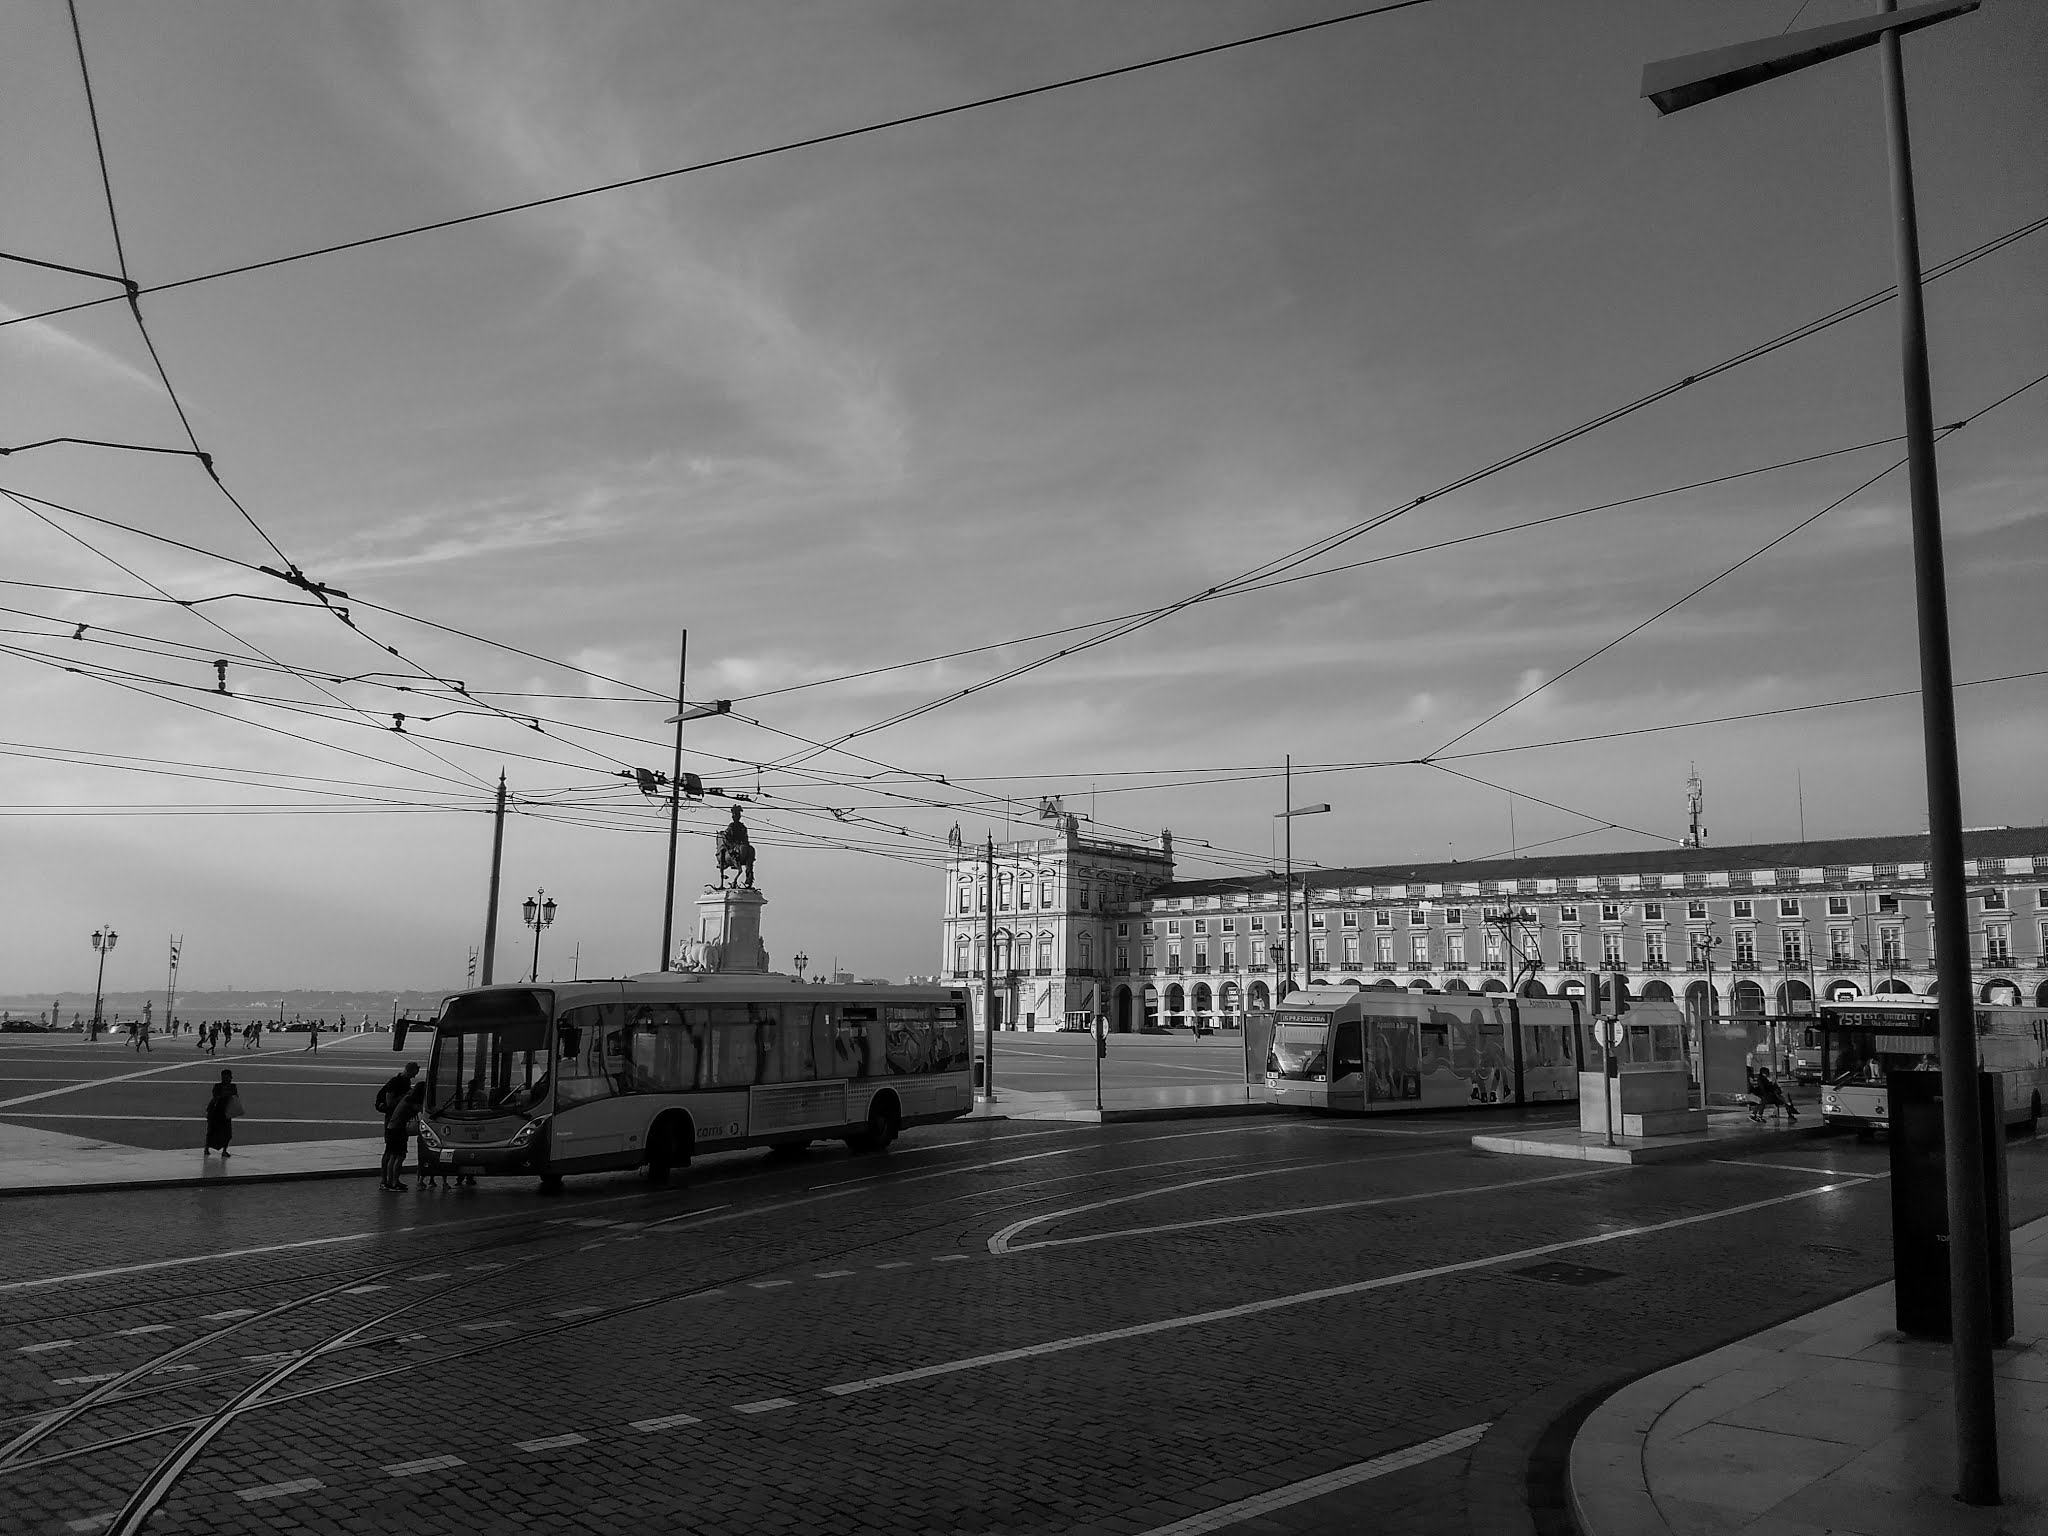 A black and white photo of the tram in Lisbon, Portugal.